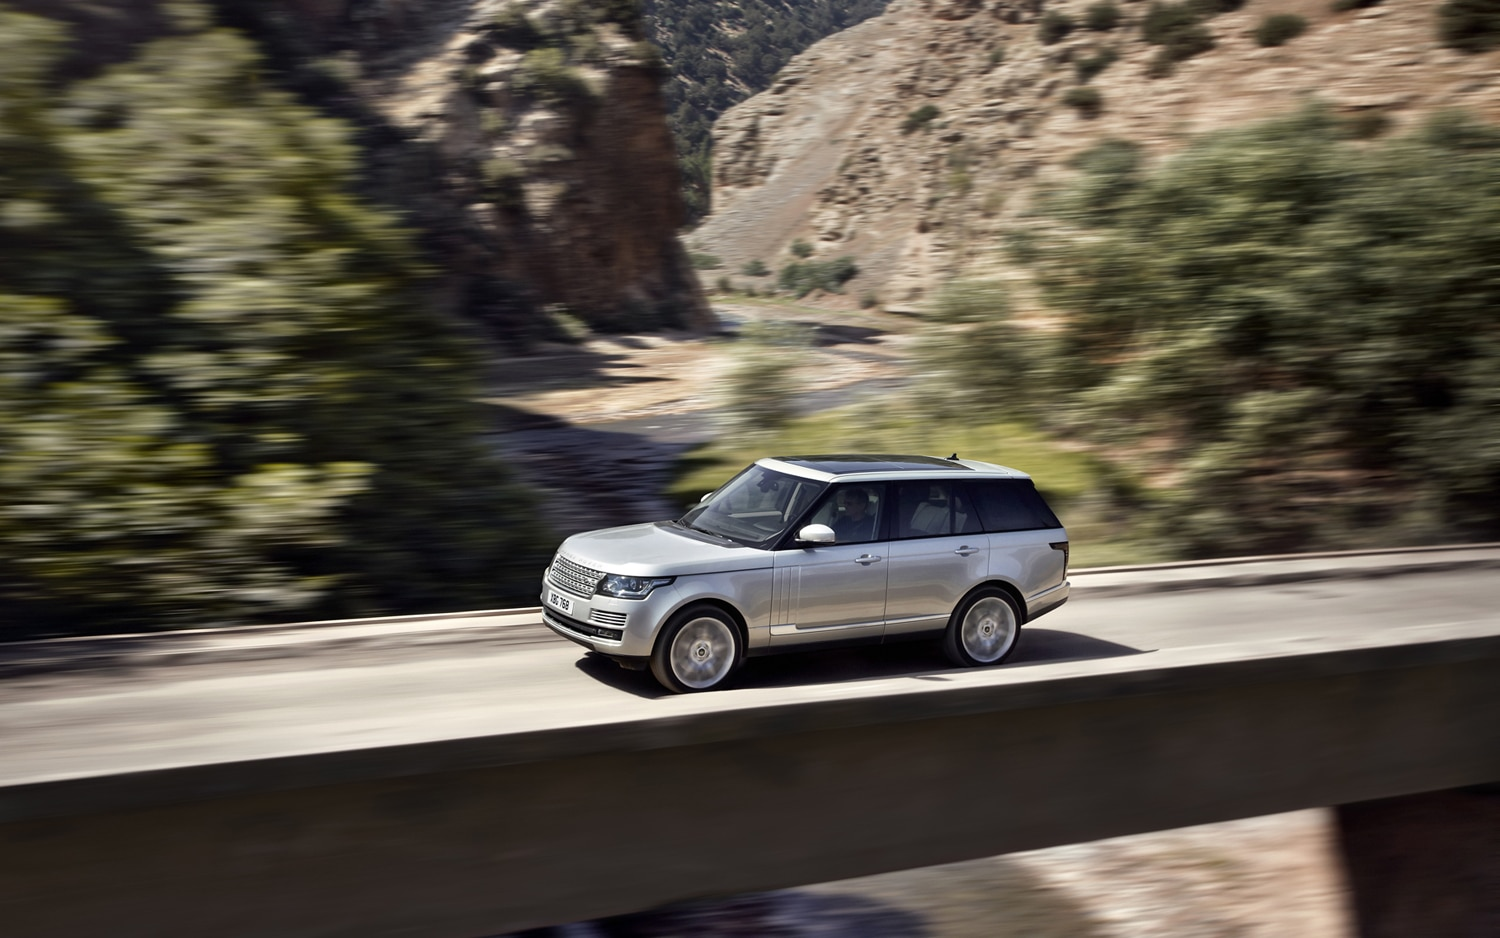 2013 Land Rover Range Rover Side In Motion 2